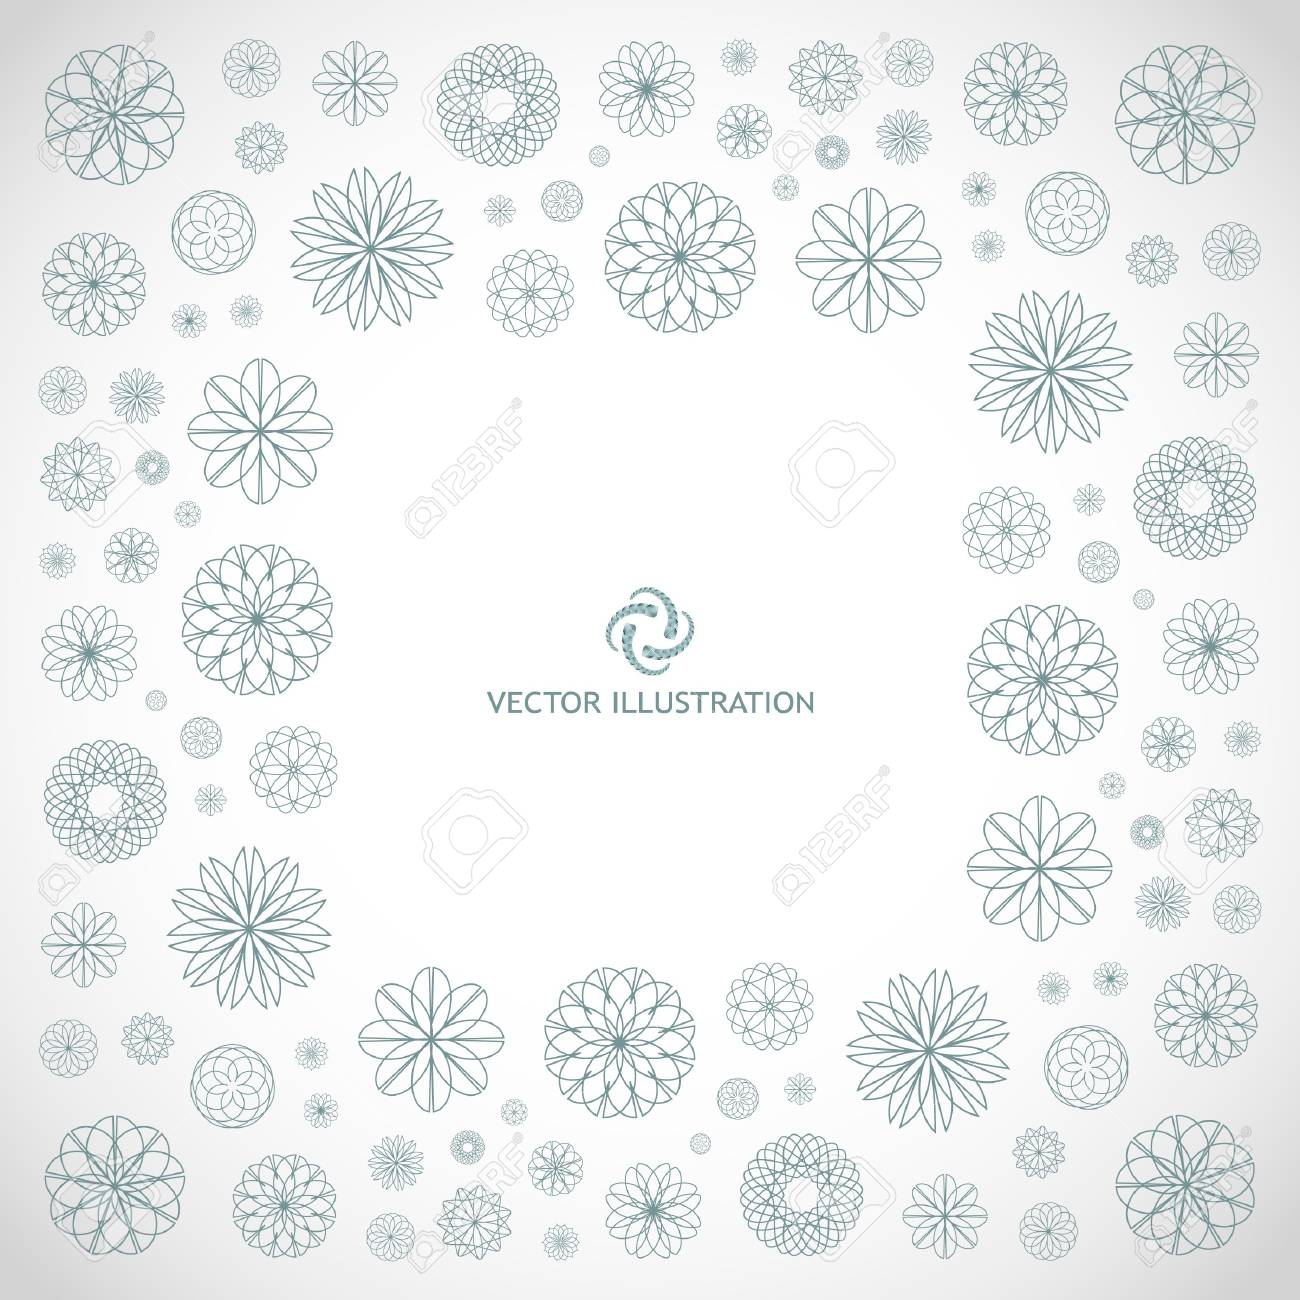 Abstract frame. Floral illustration. Stock Illustration - 8301846